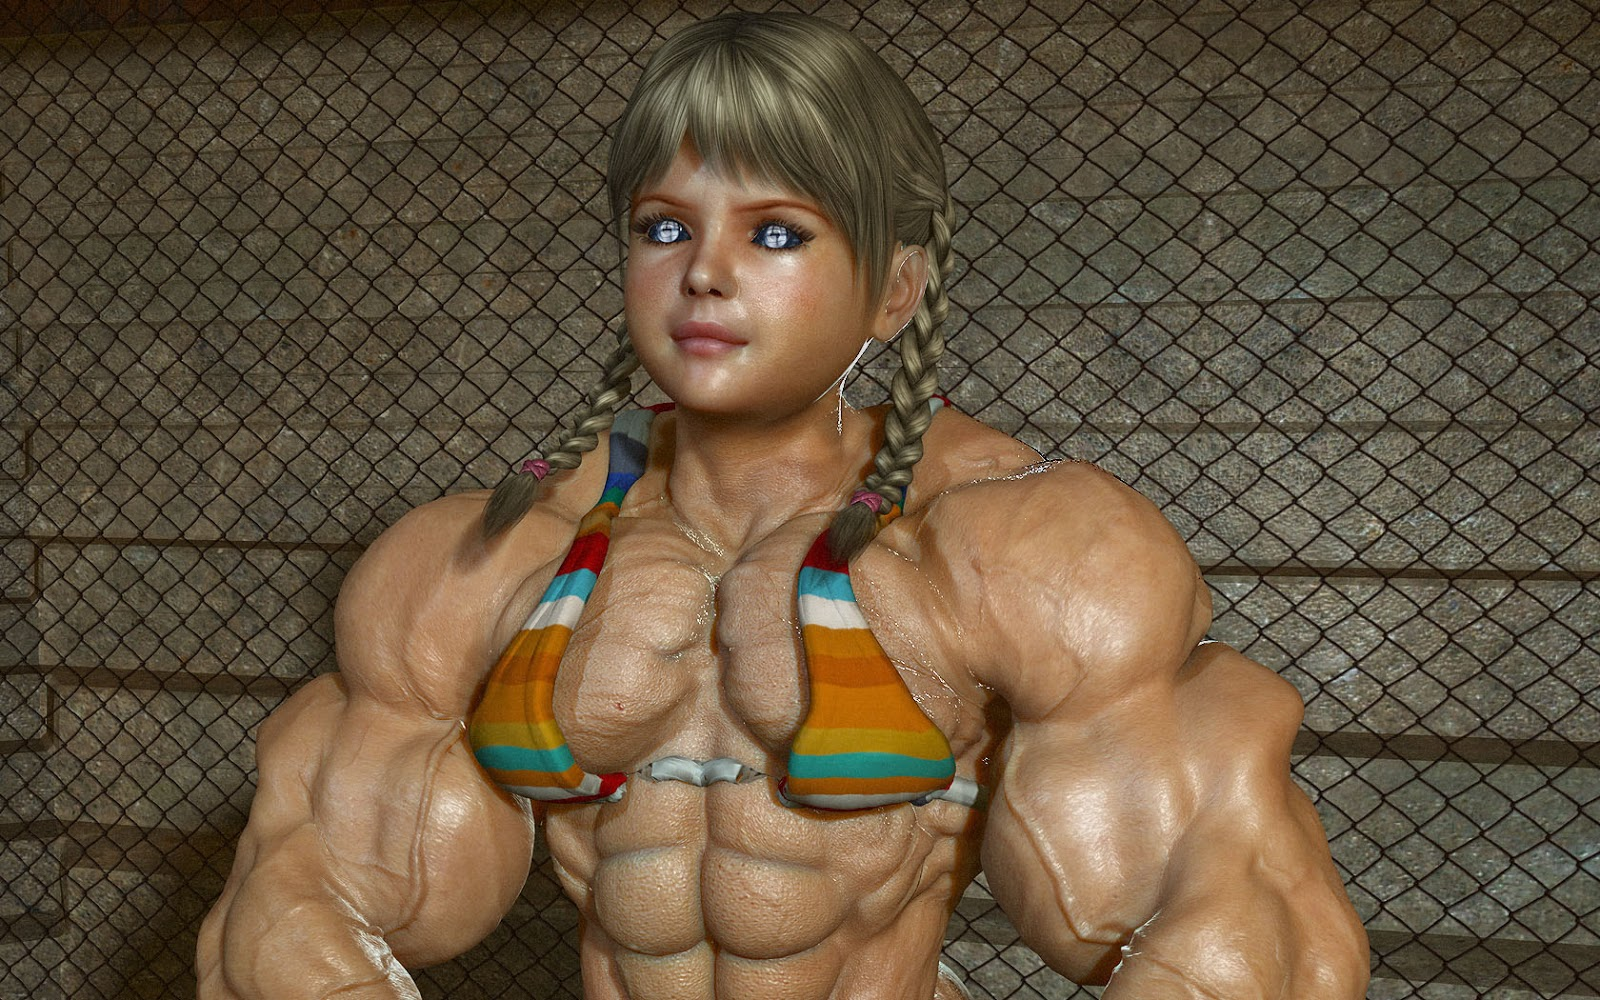 3d muscle girl exploited image